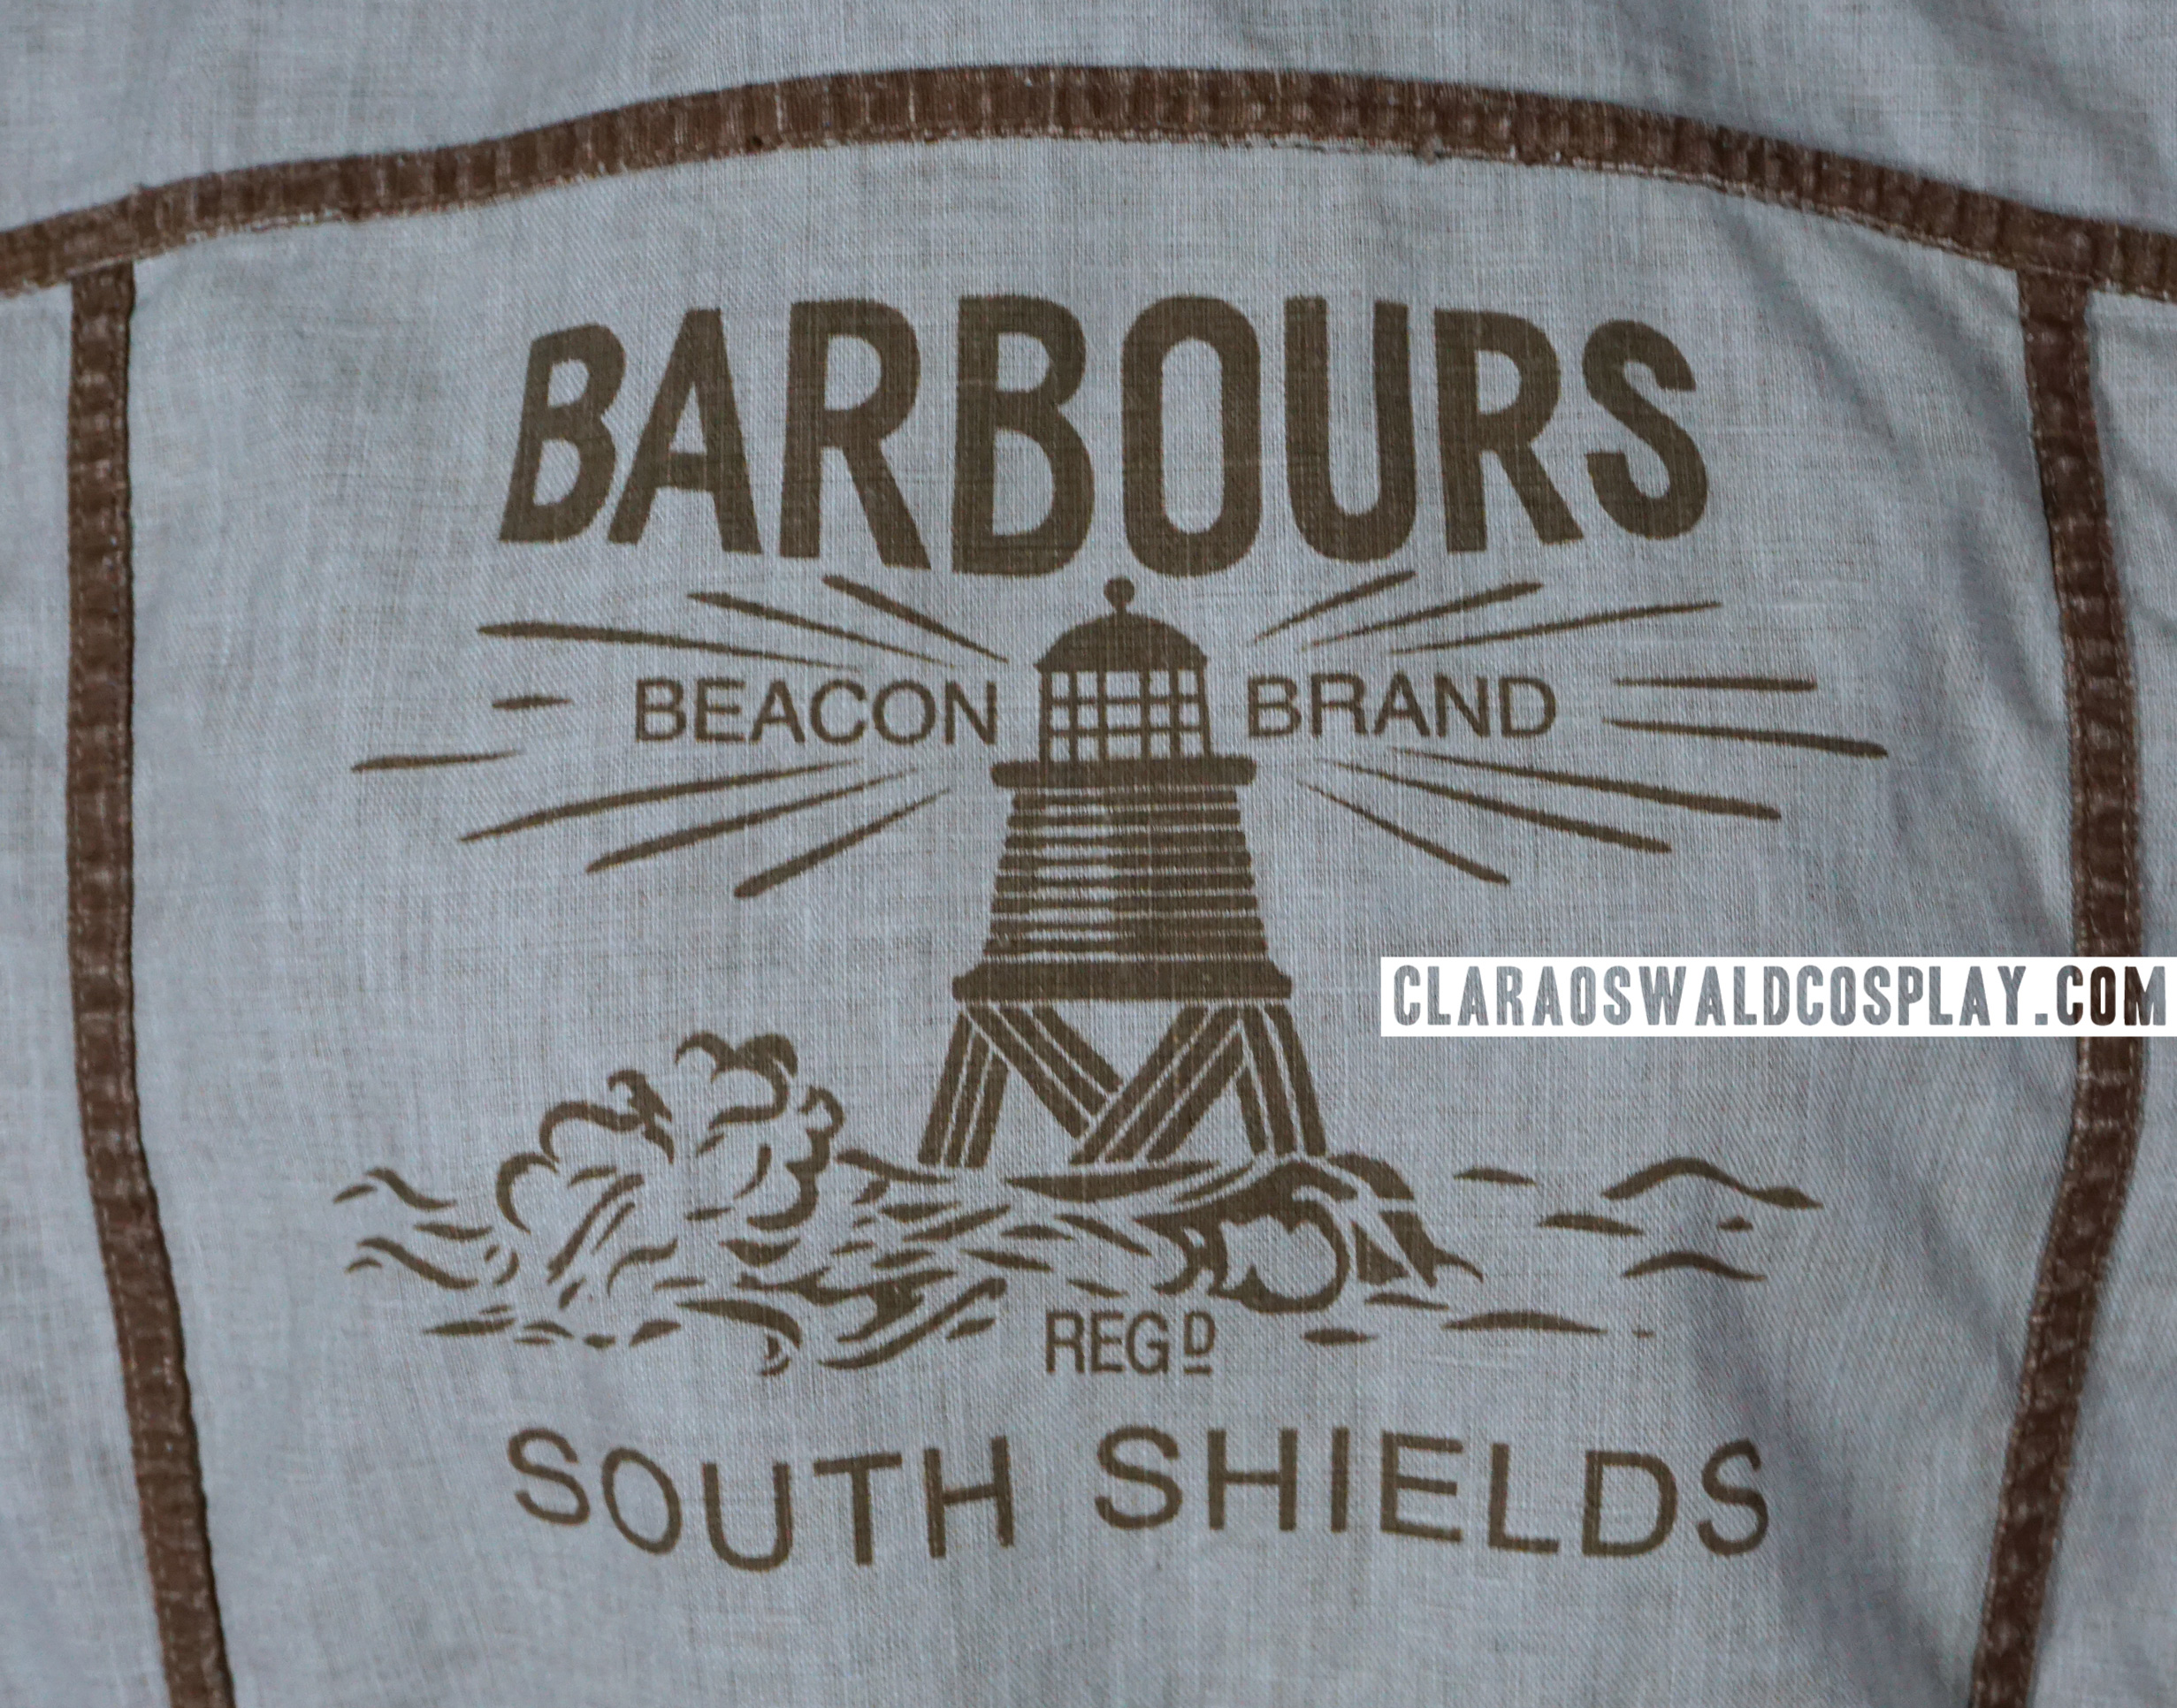 The inside of the jacket also has this particular Barbour logo